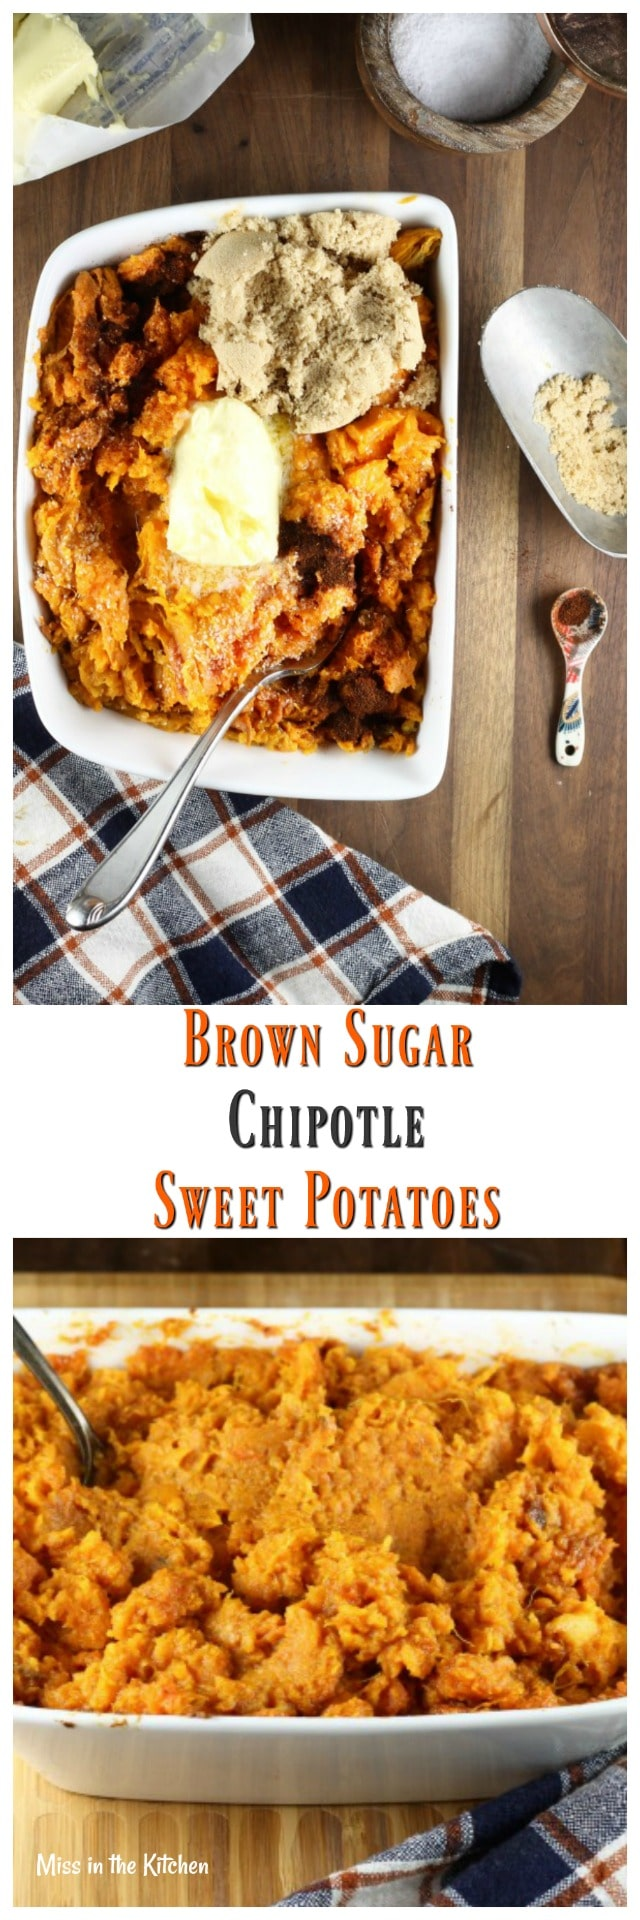 Brown Sugar Chipotle Sweet Potatoes Recipe from MissintheKitchen.com #holiday #thanksgiving